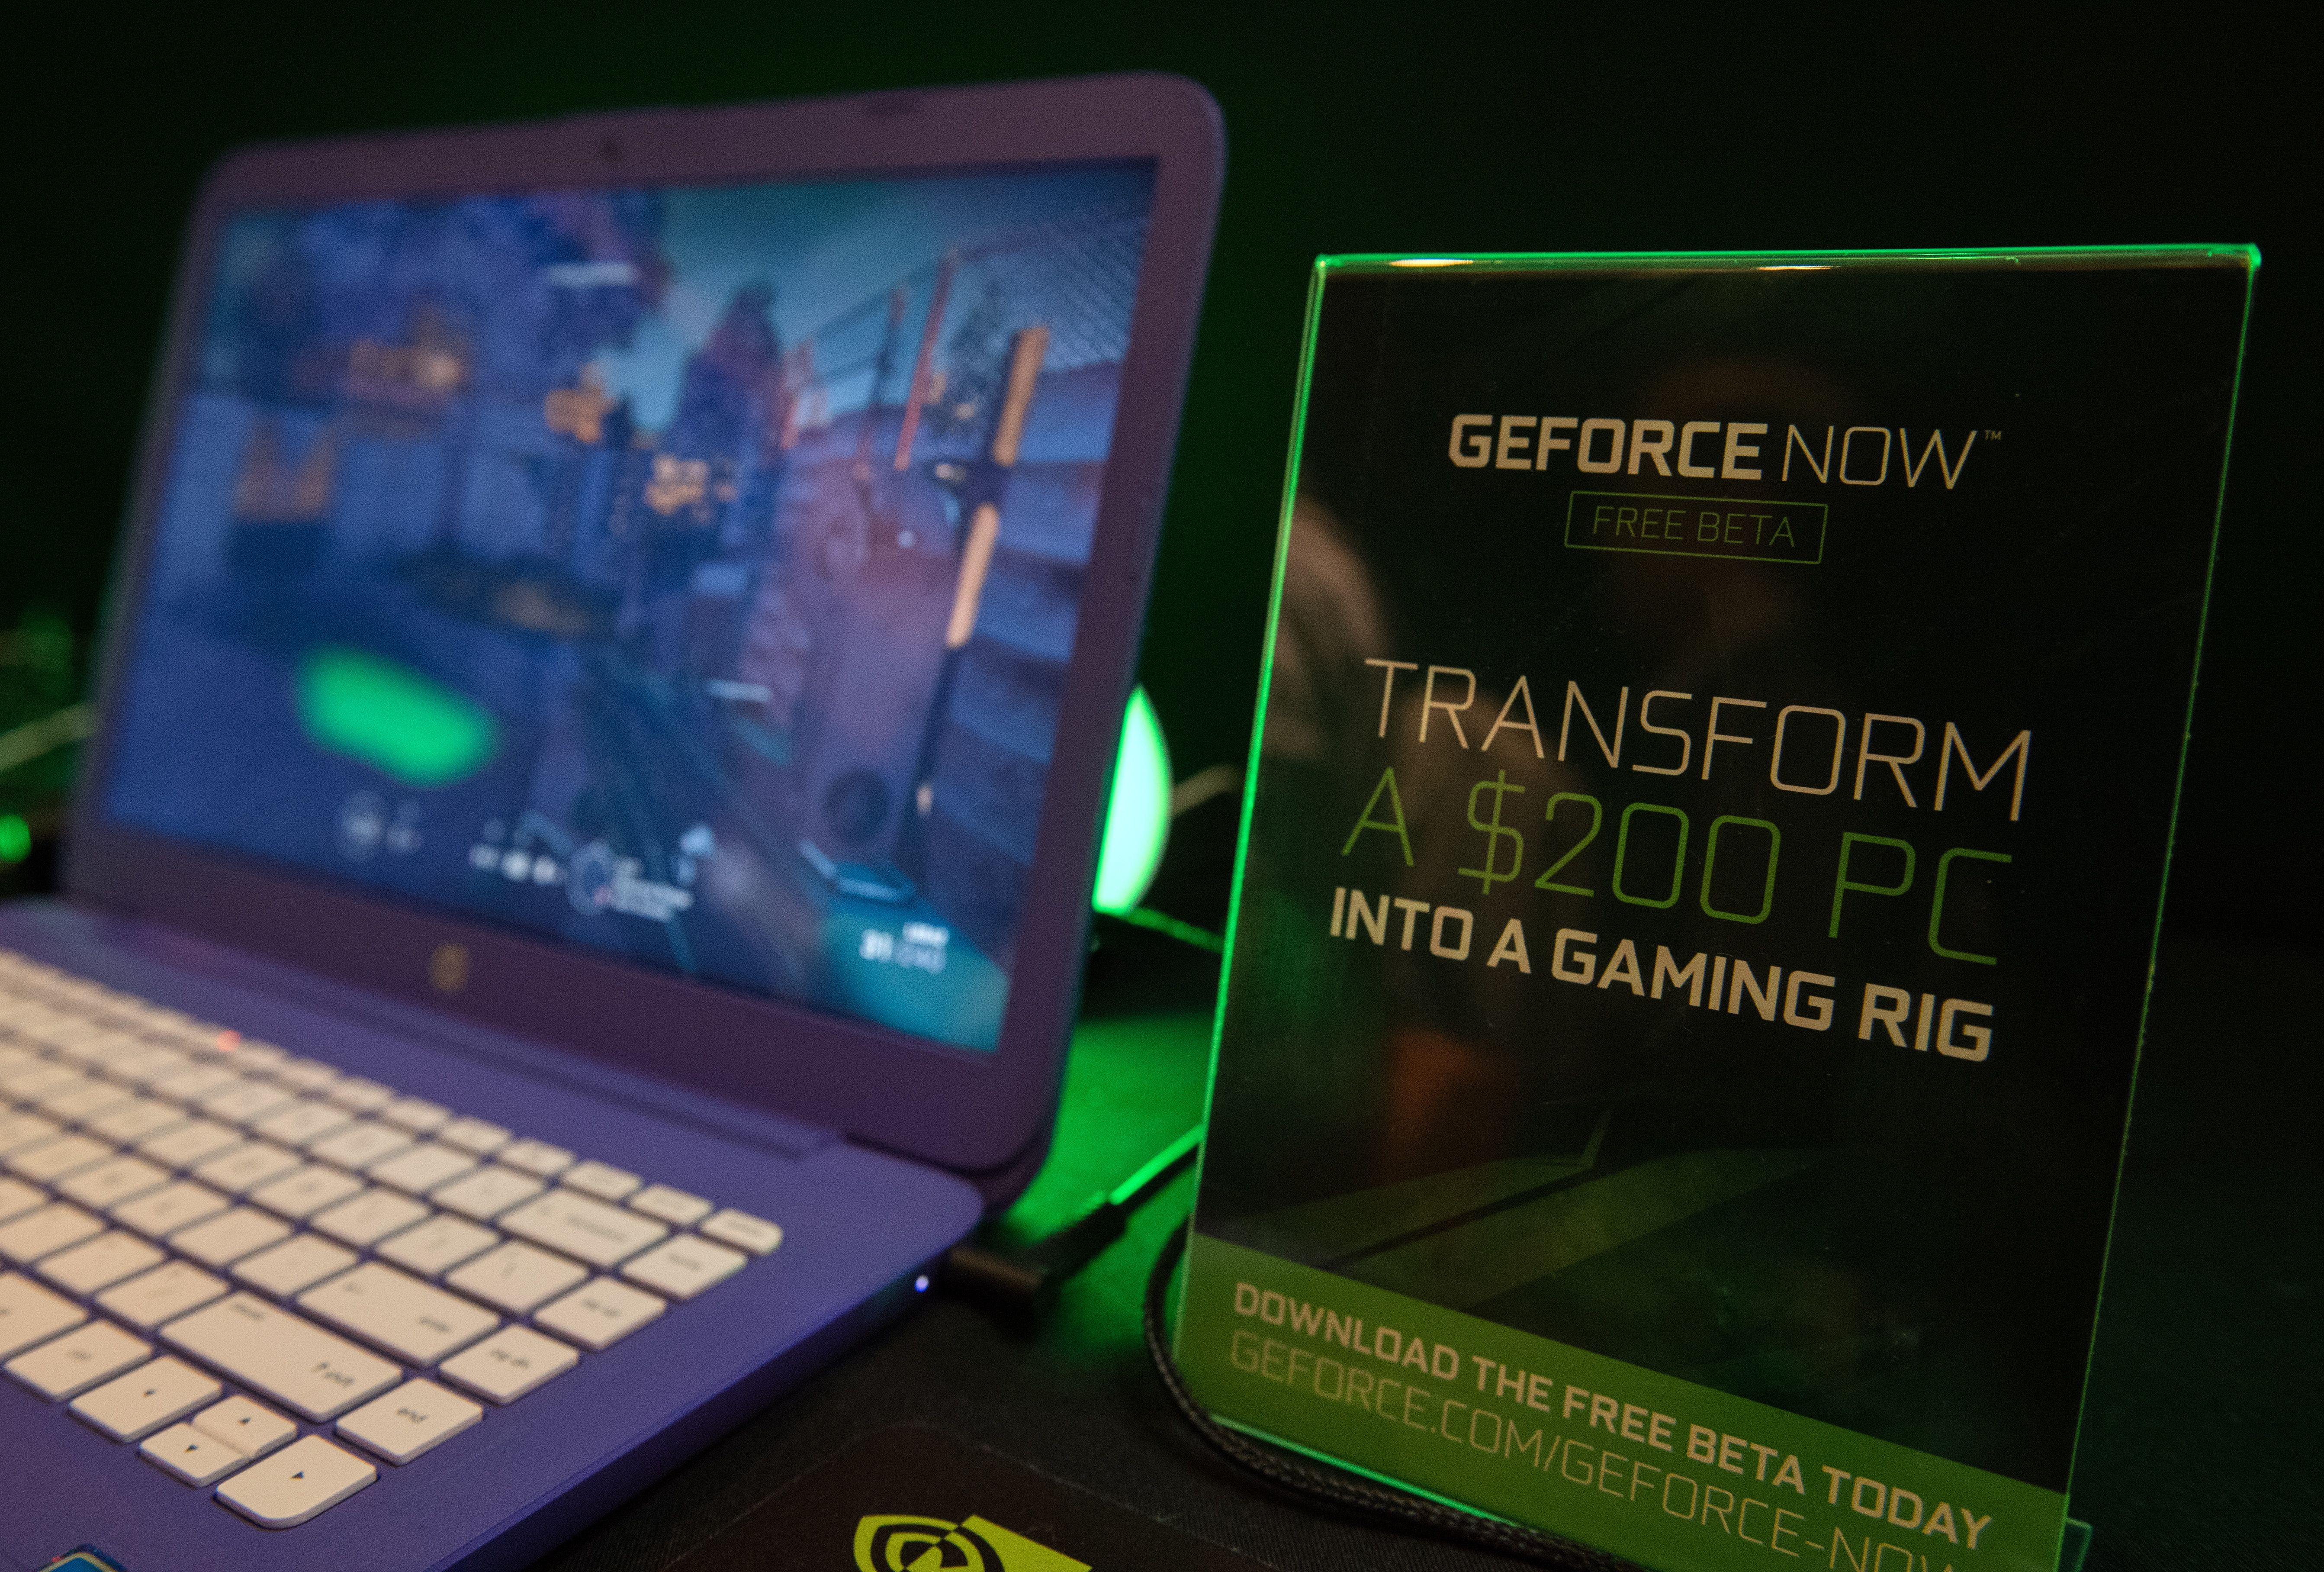 Nvidia's GeforceNow game streaming platform being trialled